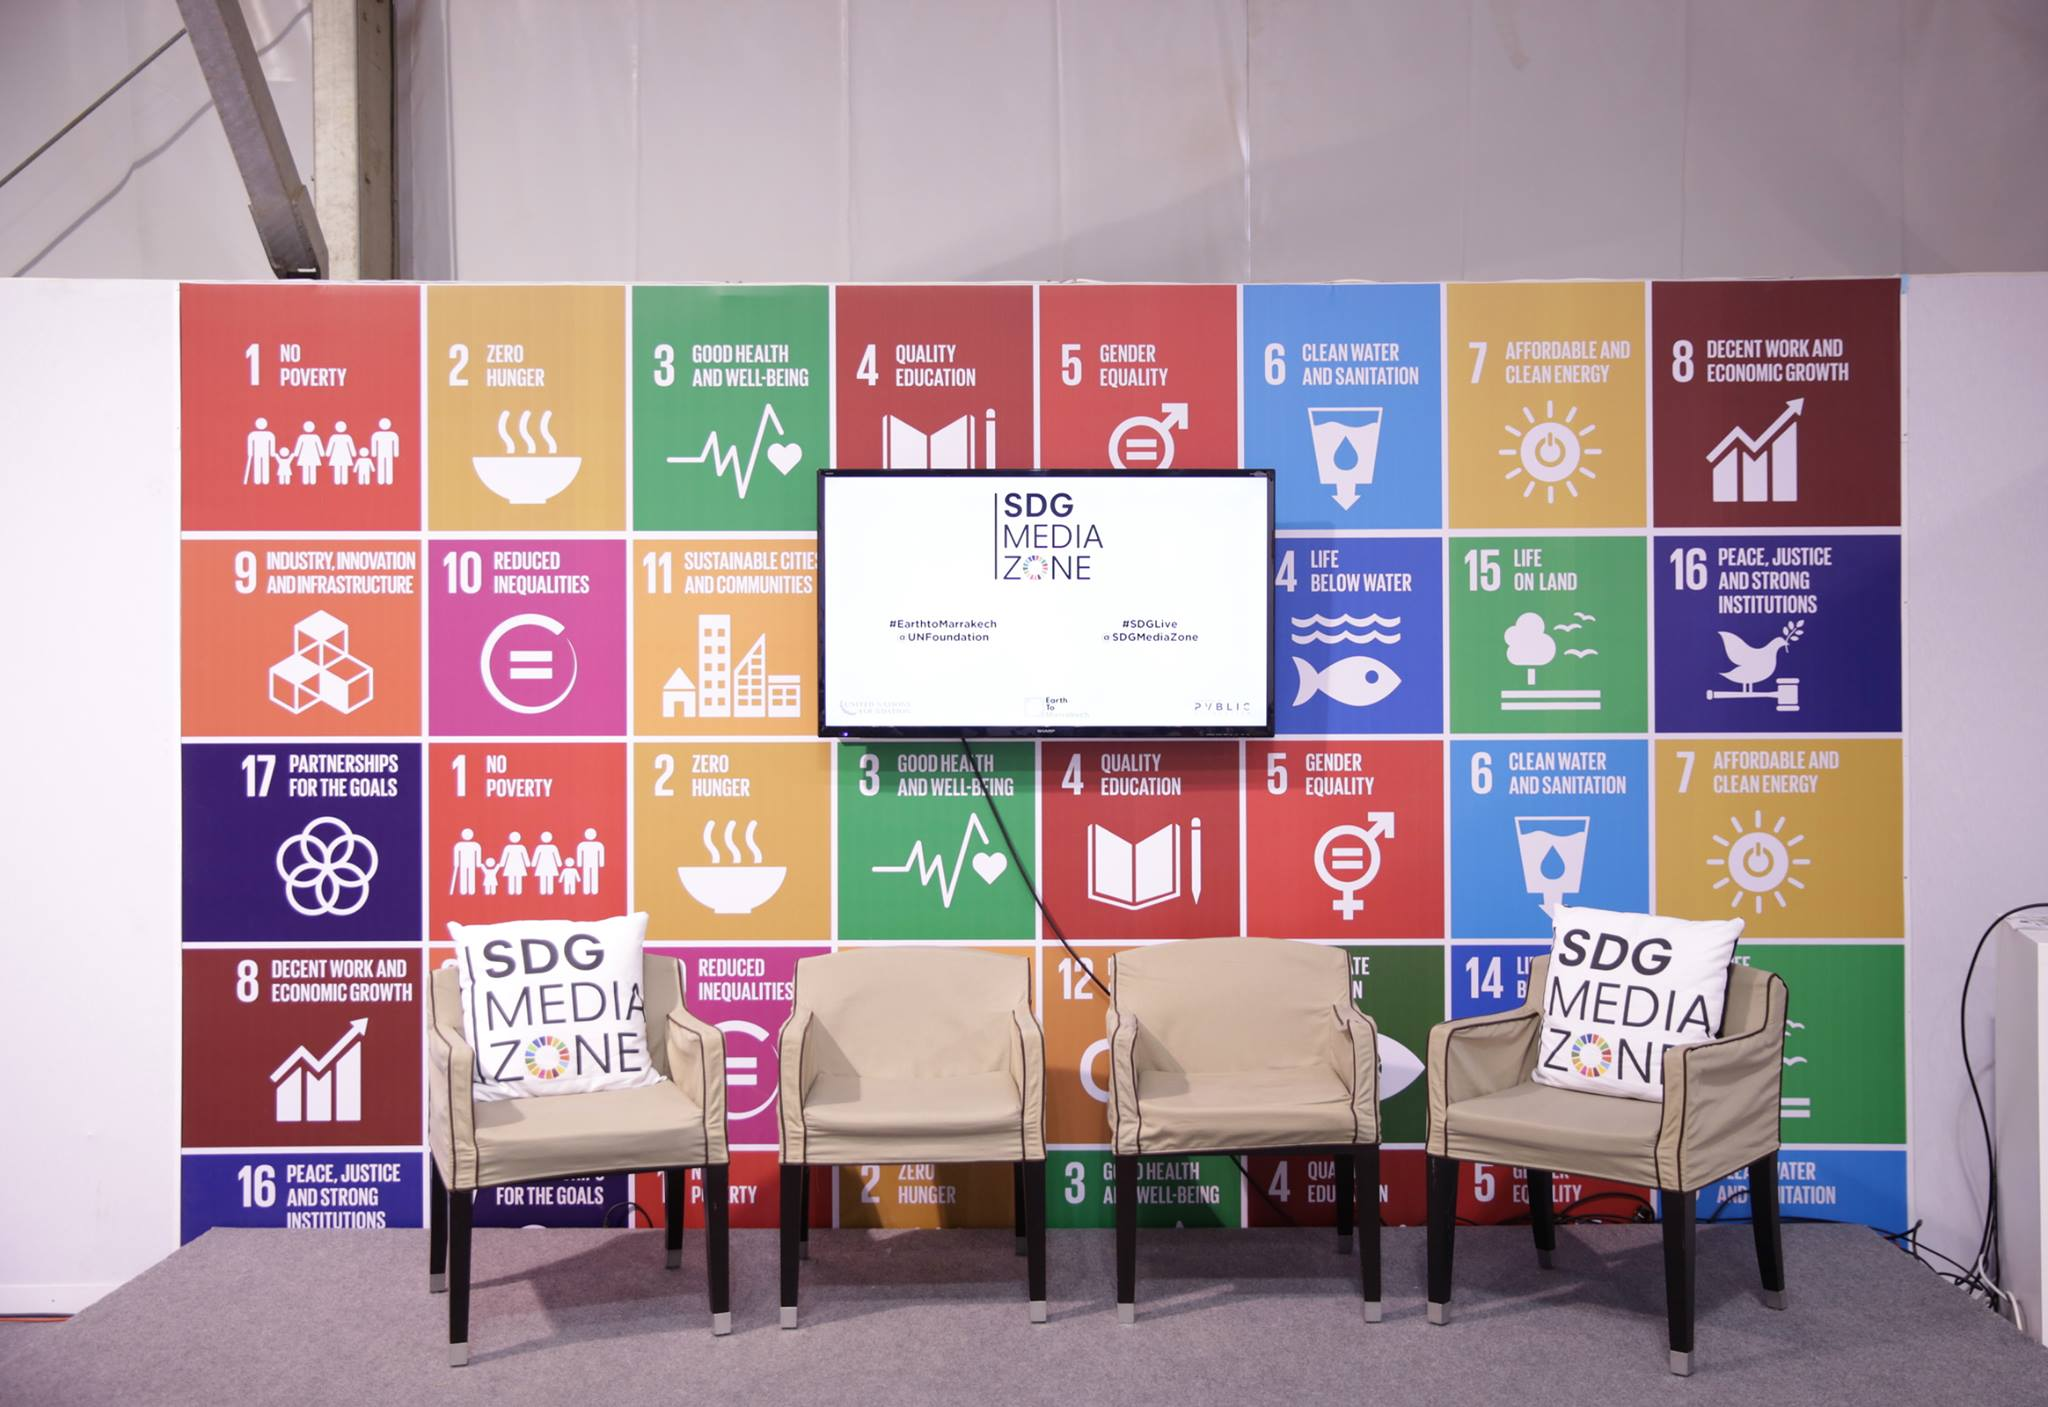 21 September 2017 - SDG Media Zone, United Nations HQ, New York, USA   On behalf of C-Change, Carolien de Bruin will moderate a 15-minute panel called  Connect 4 Impact: The Urgency of Strategic, Collaborative SDG Action . The panel members are Siddarth Chatterjee (UNDP), Githinji Gitahi (Amref Flying Doctors) and Myriam Sidibe (Unilever). To follow the panel discussion on  livestream , please go  here .